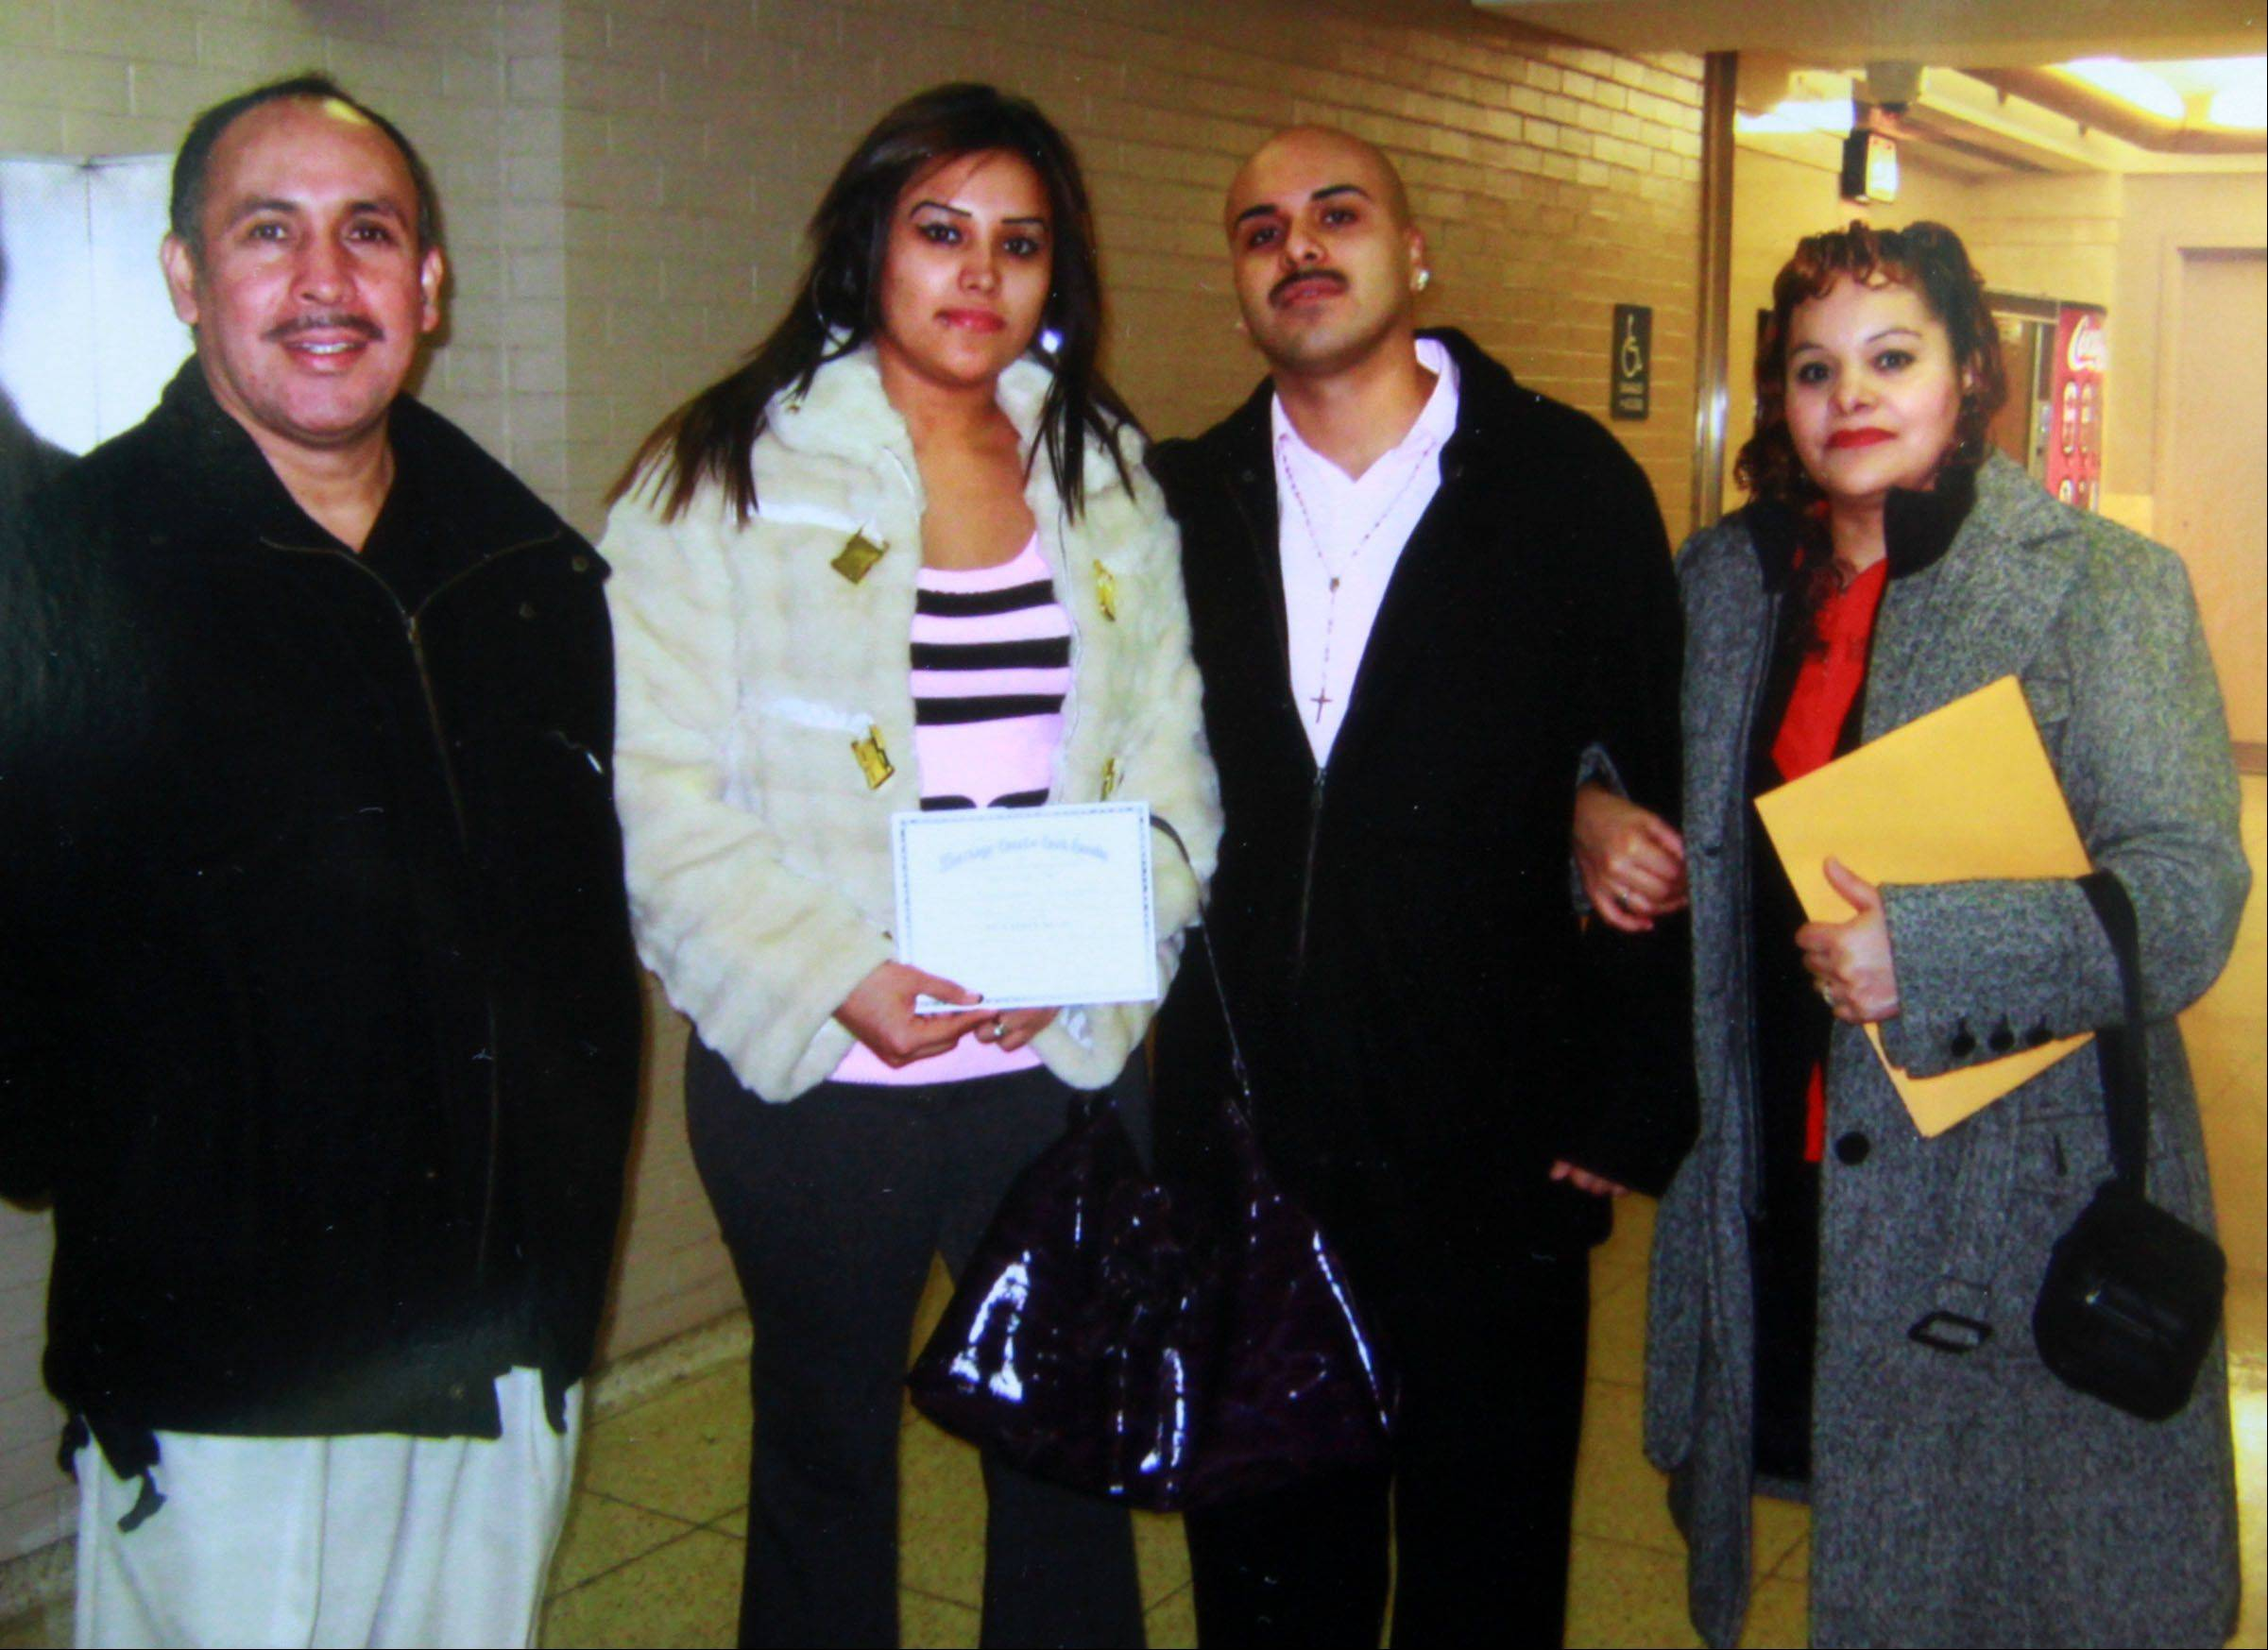 At their 2011 wedding, Rafael Orozco and Mayra Ceniceros, center, celebrate with Orozco's parents, Rafael and Irma Orozco. The younger Orozco was killed May 1 in Wheeling when he was shot in the back by a stray bullet.